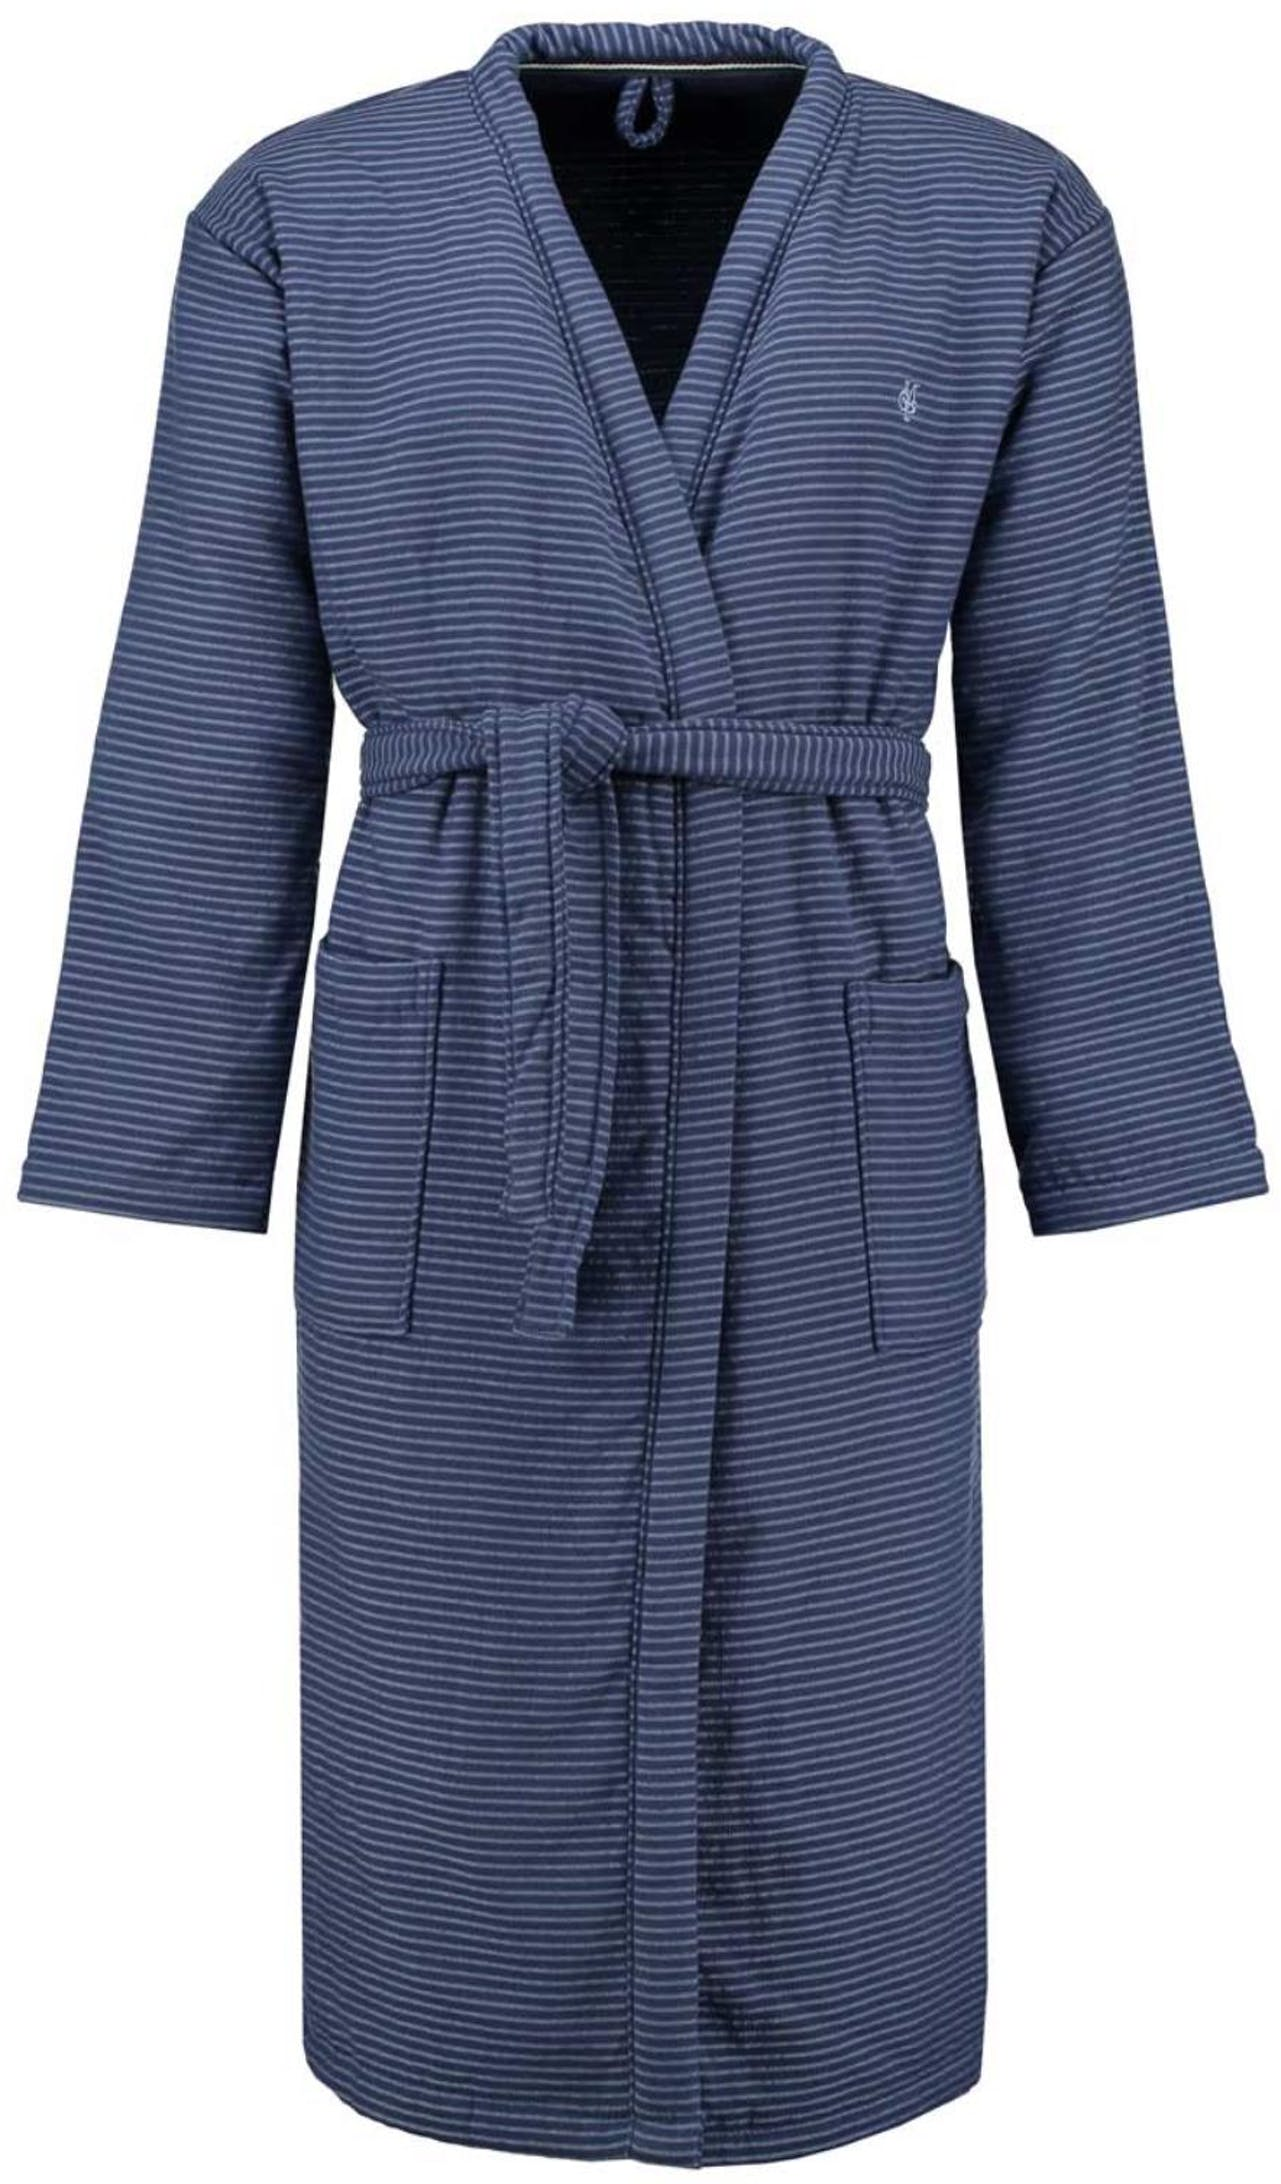 Marc O'Polo Jaik Ocean blue Bathrobe M